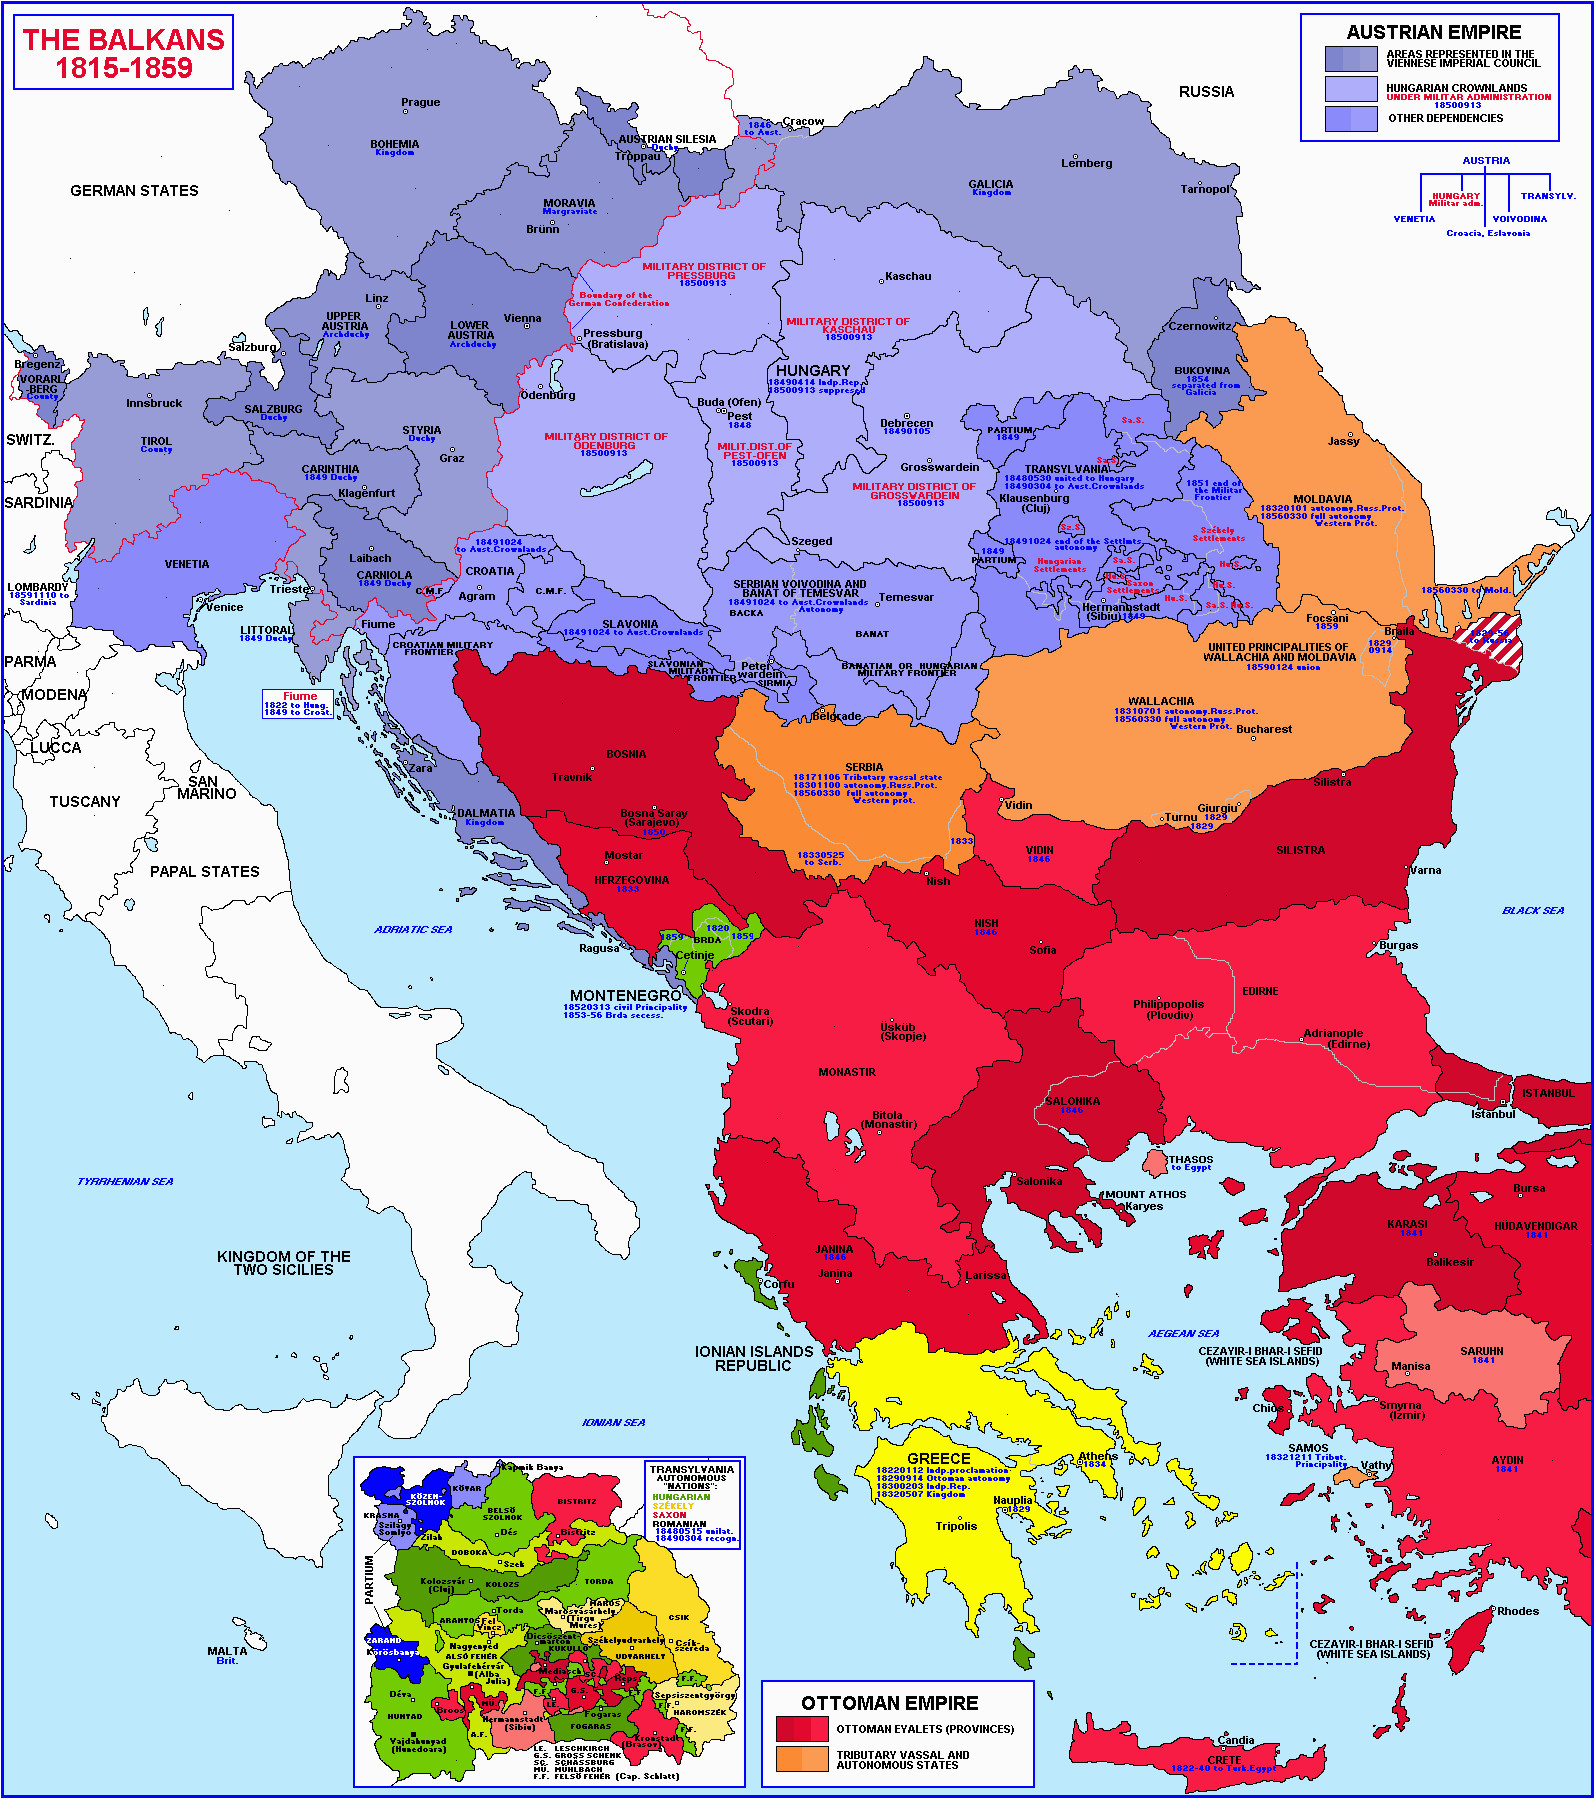 balkans historical map 1815 1859 balkans maps maps